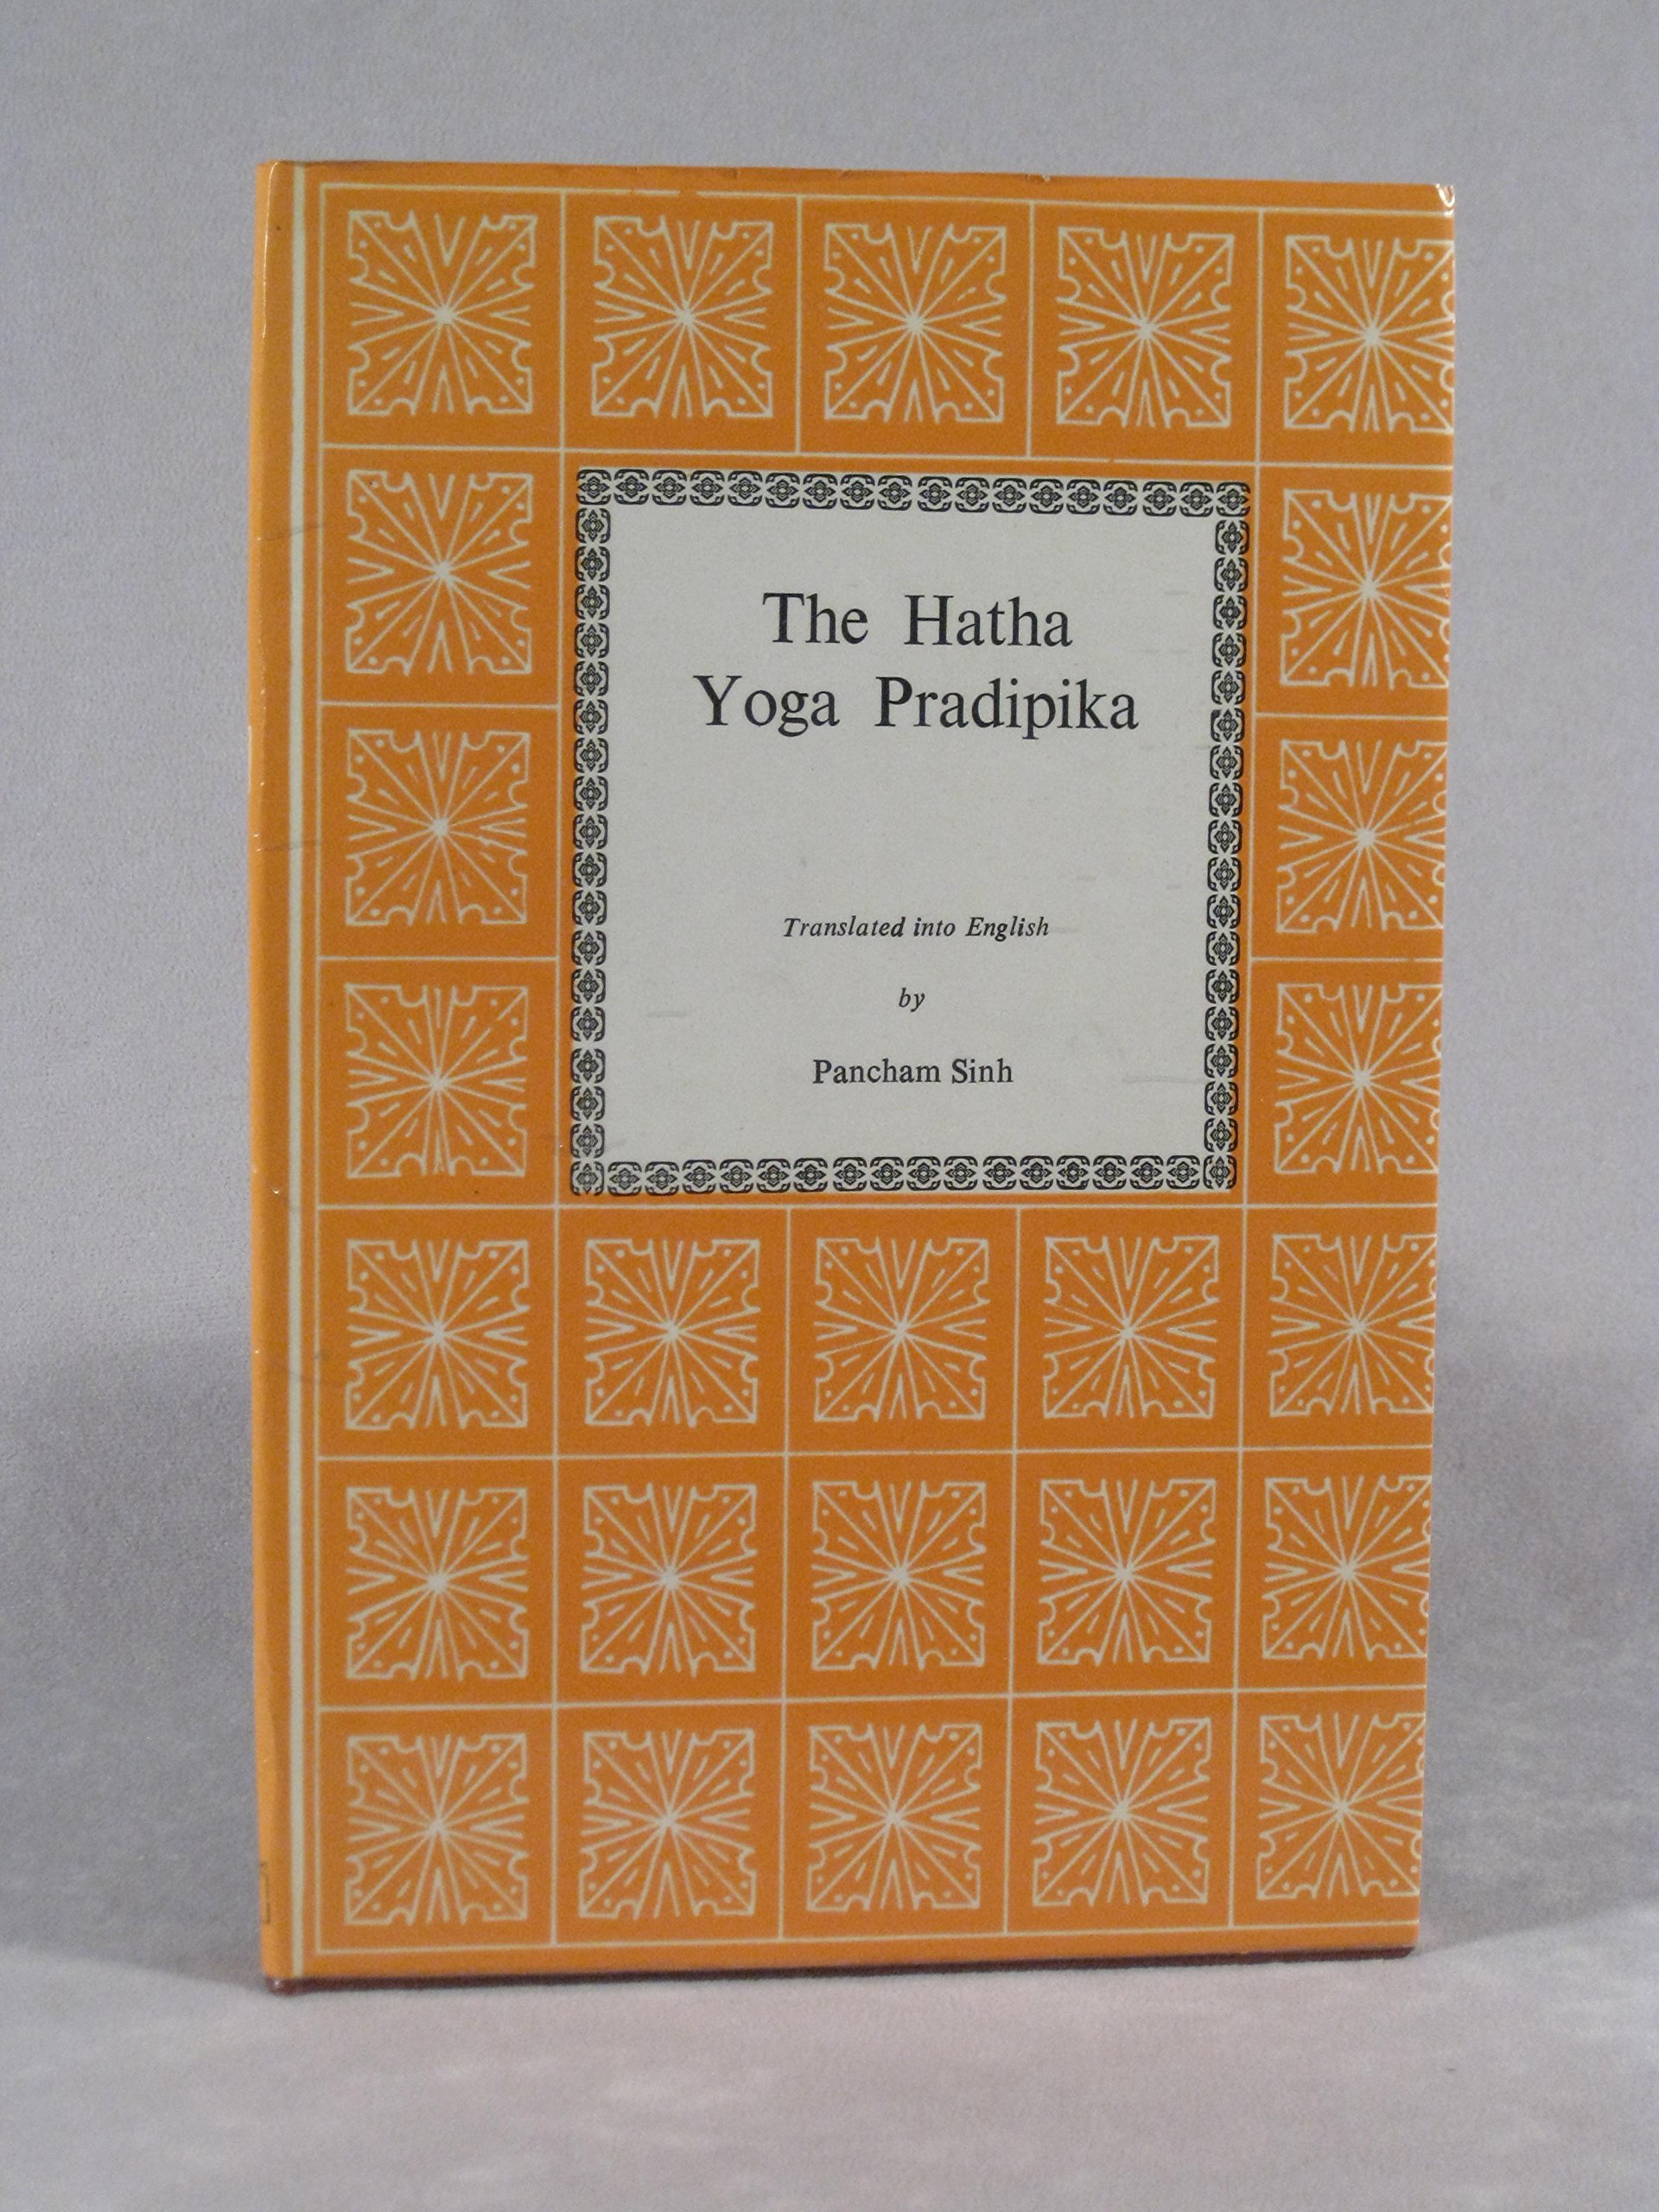 The Hatha yoga pradipika: Amazon.es: Libros